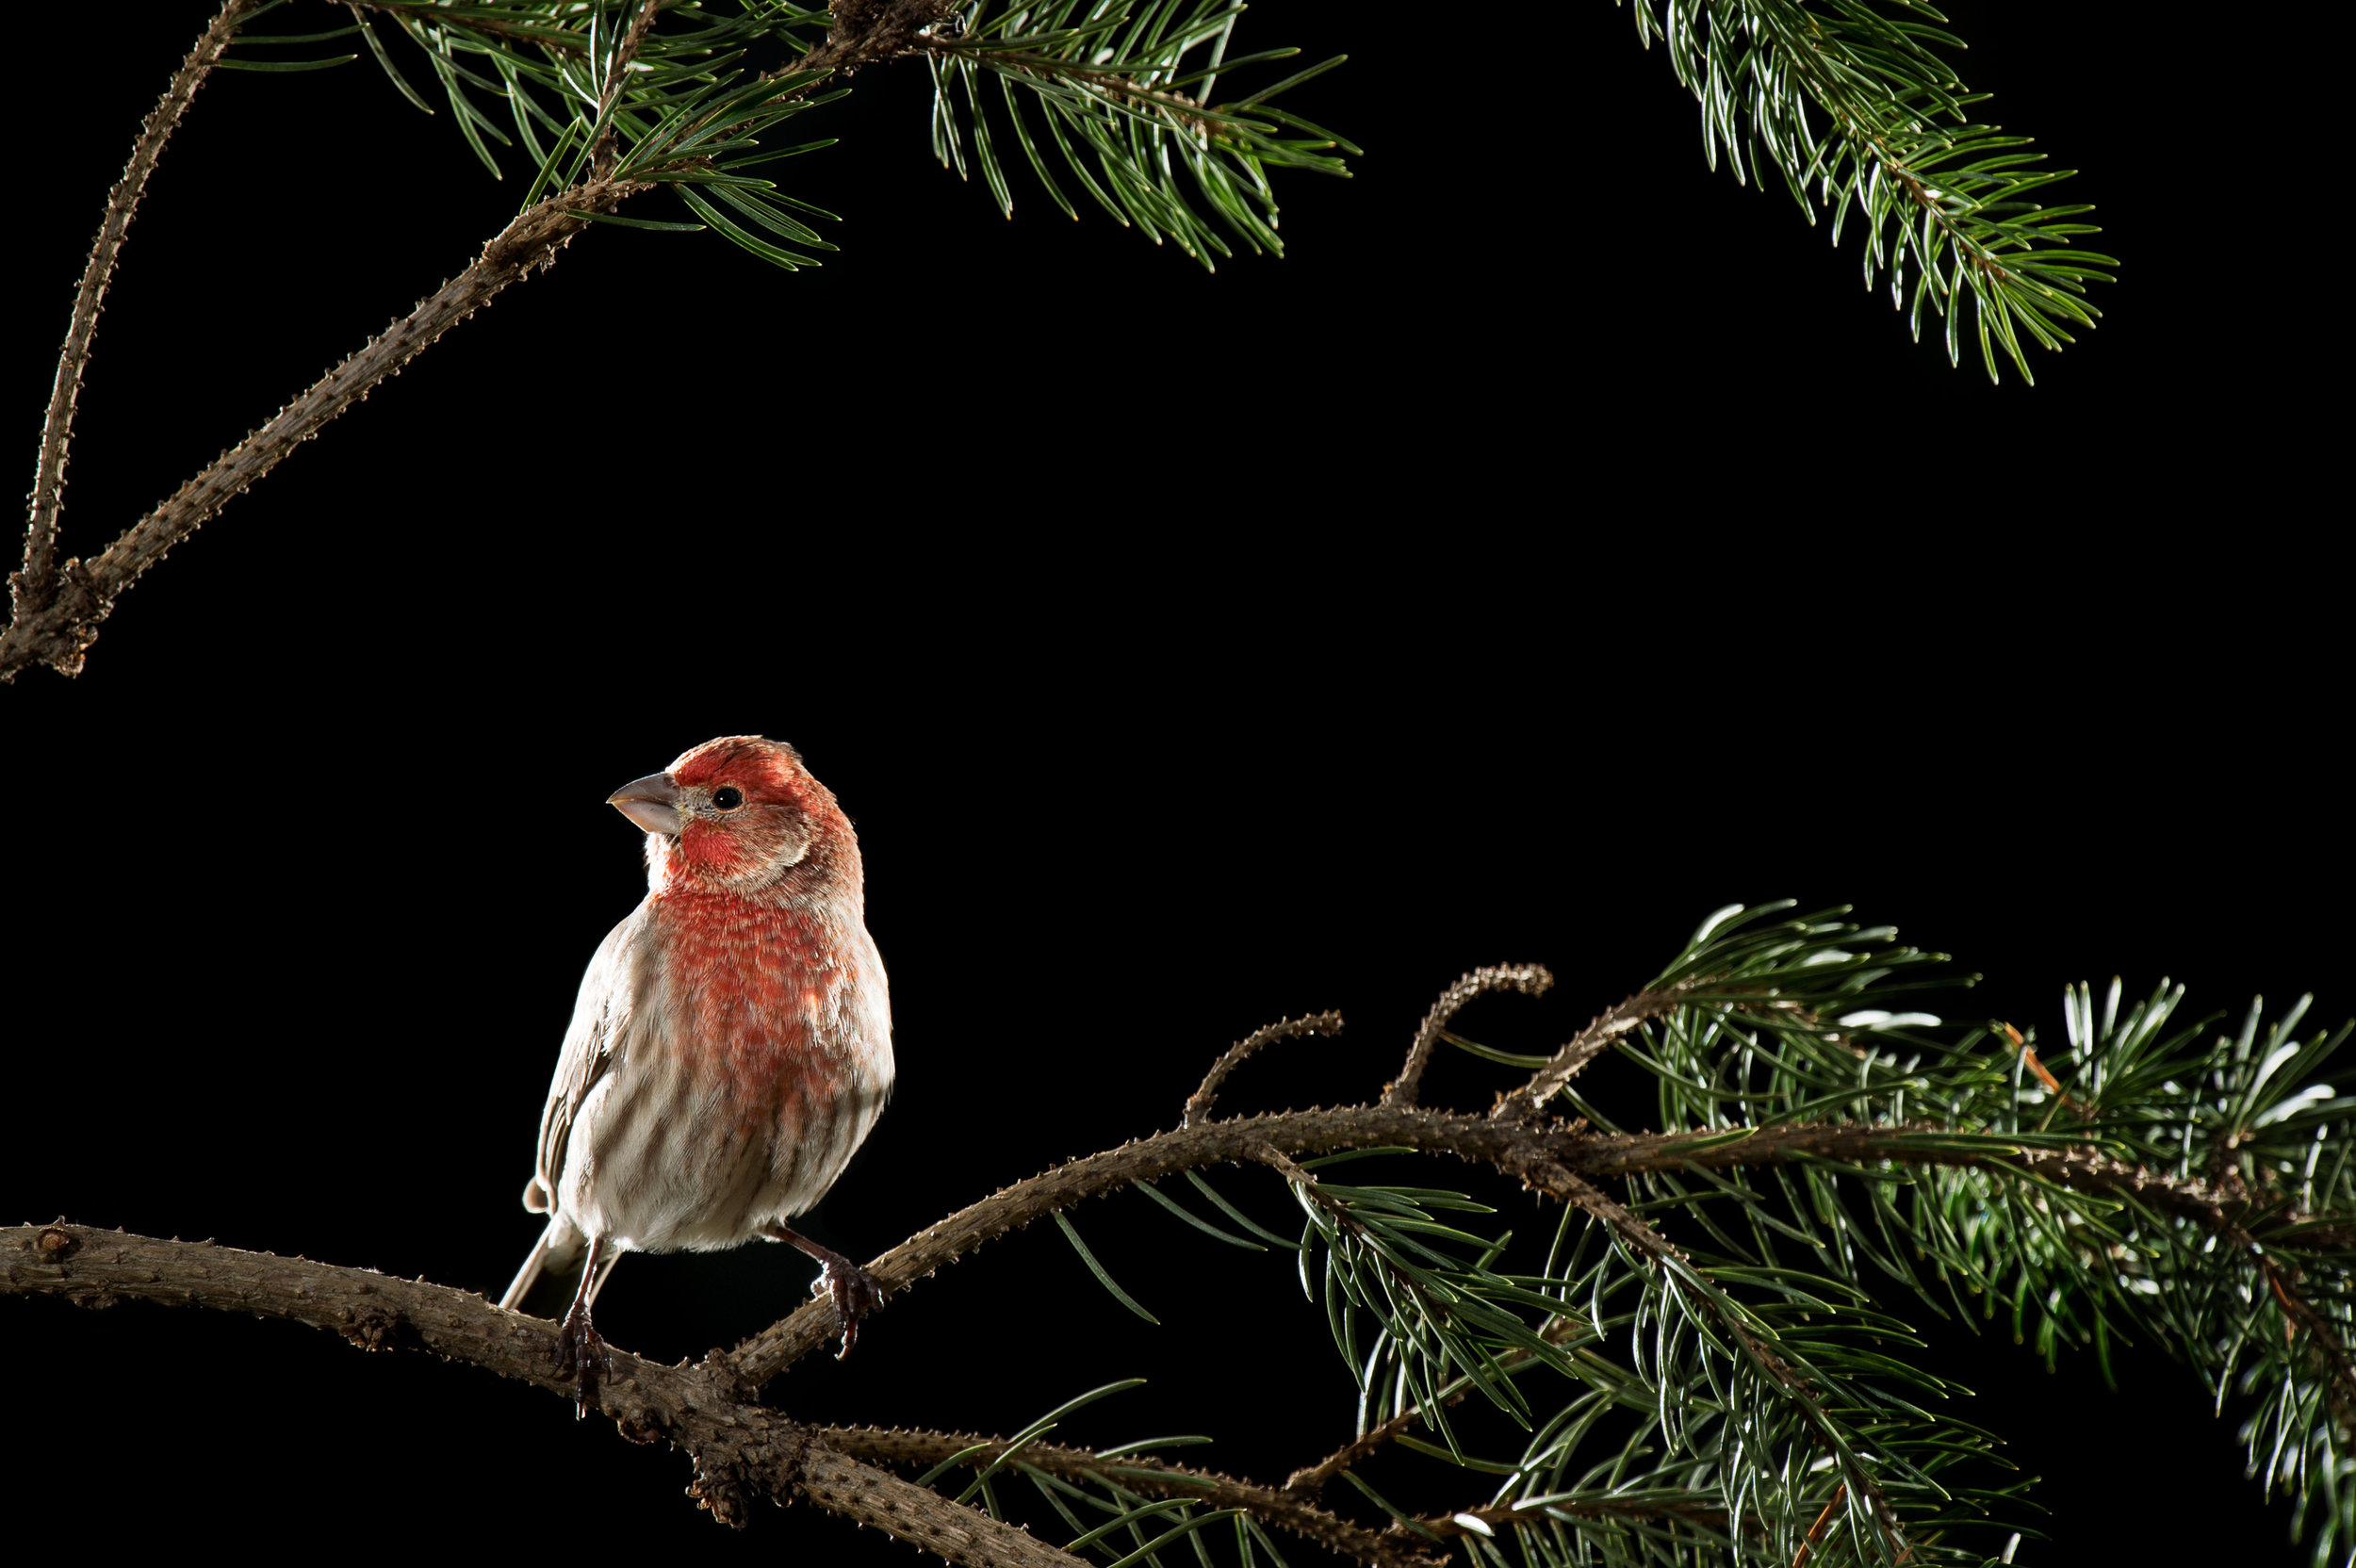 A House Finch perched for its portrait in my backyard studio.